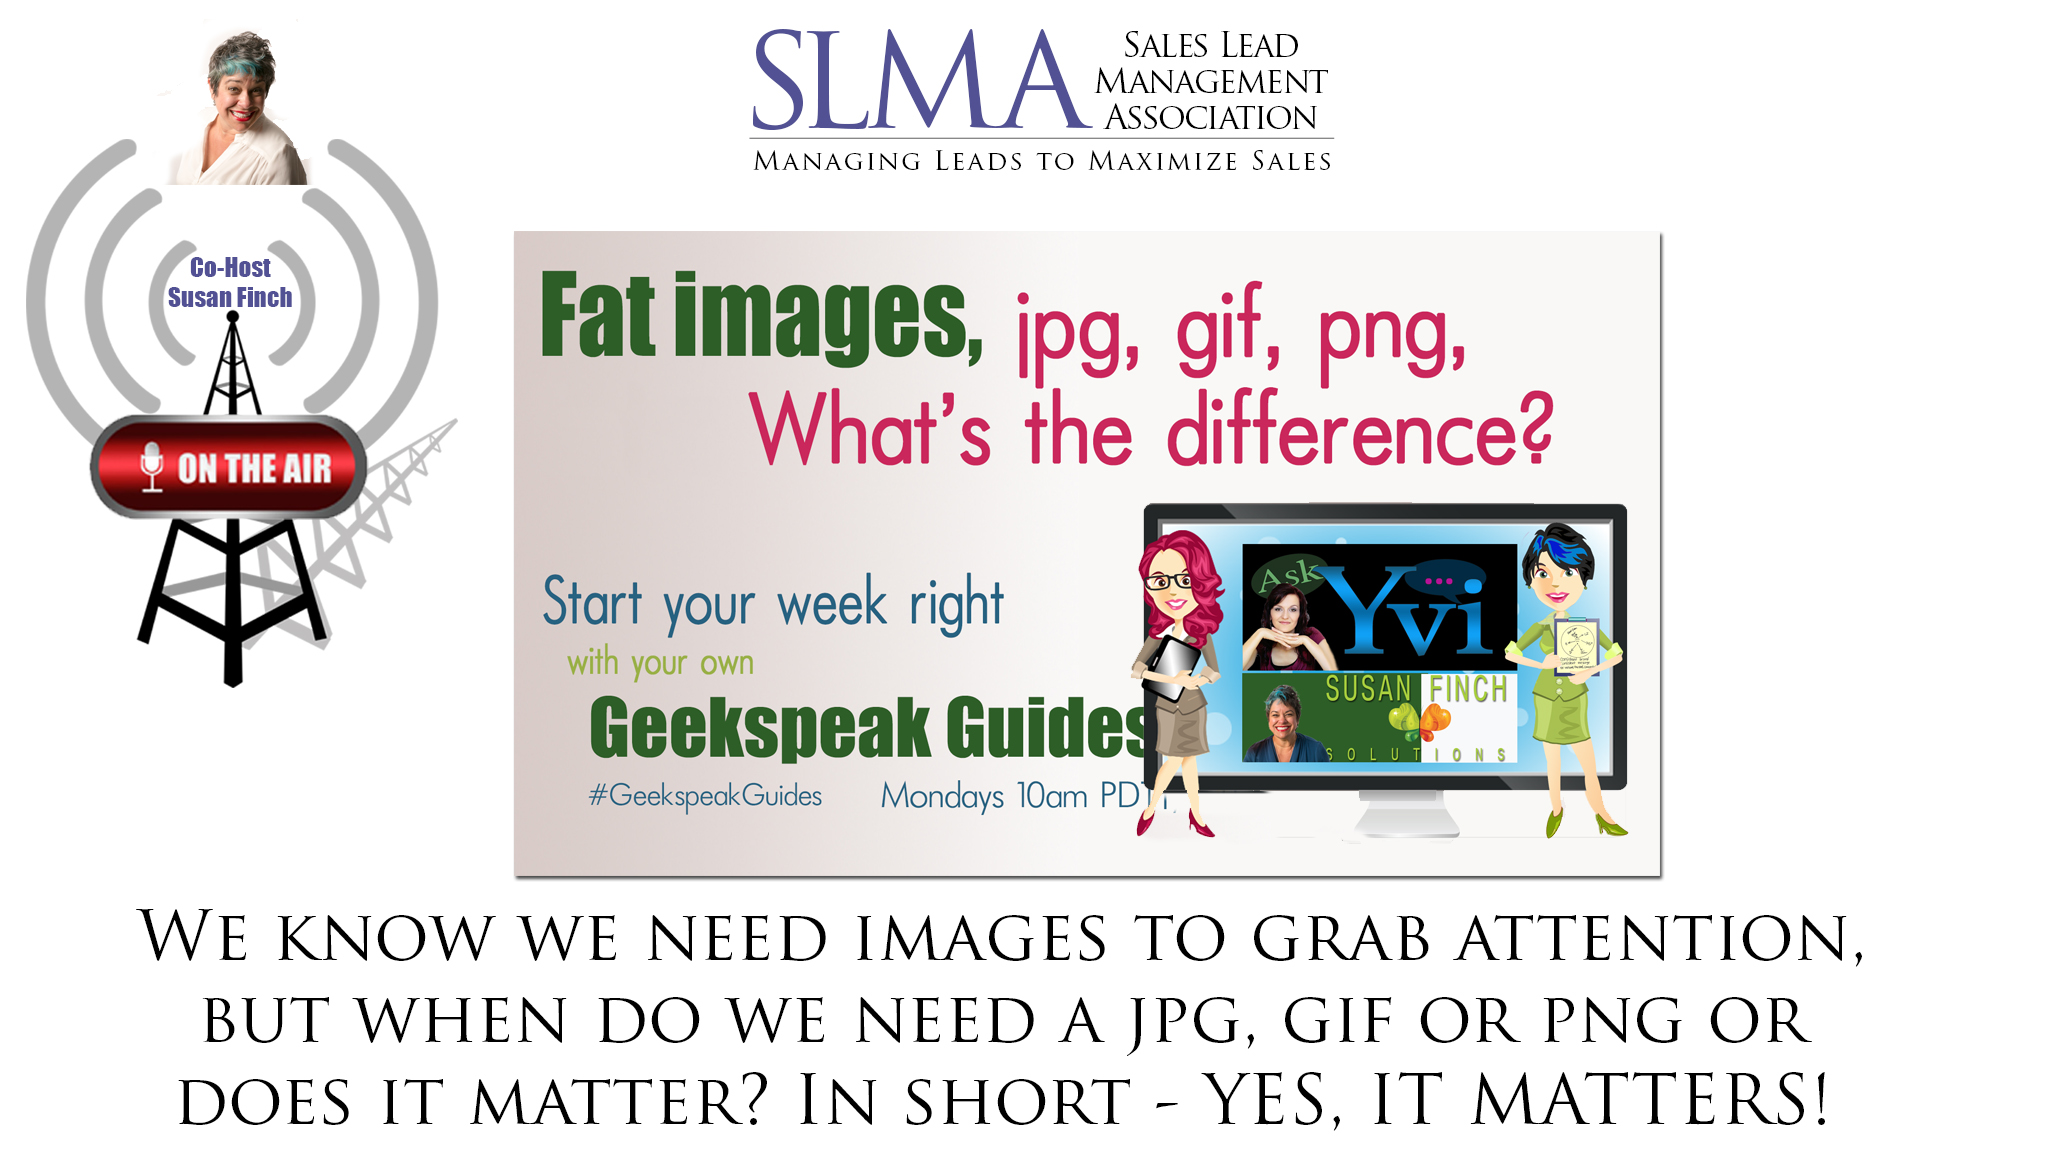 Do you know the difference between JPG, GIF, PNG?.